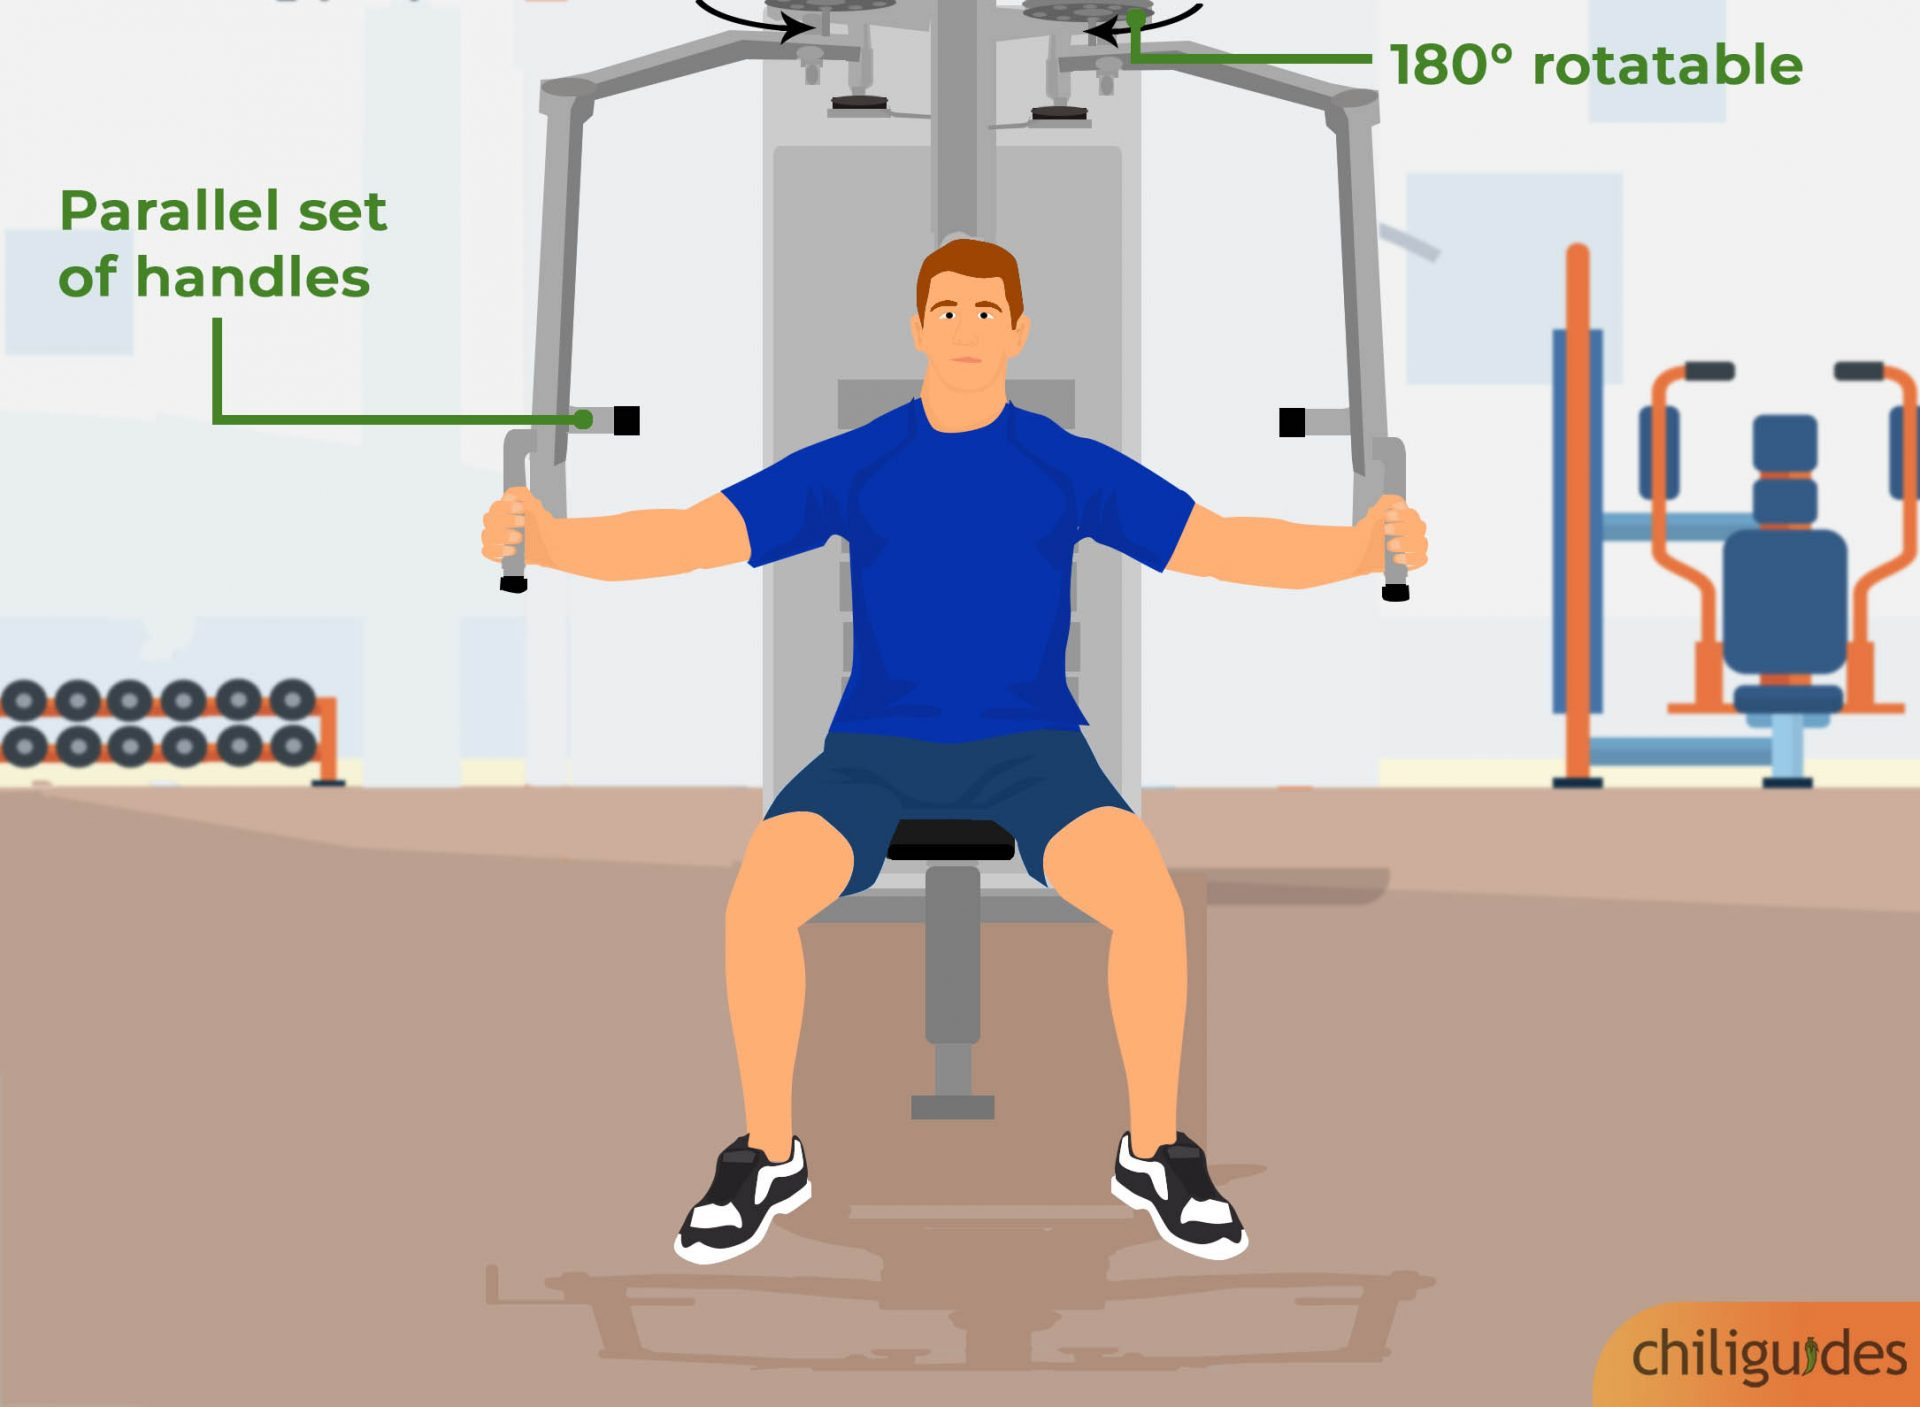 Get rotational handles if you want to work your rear delts.